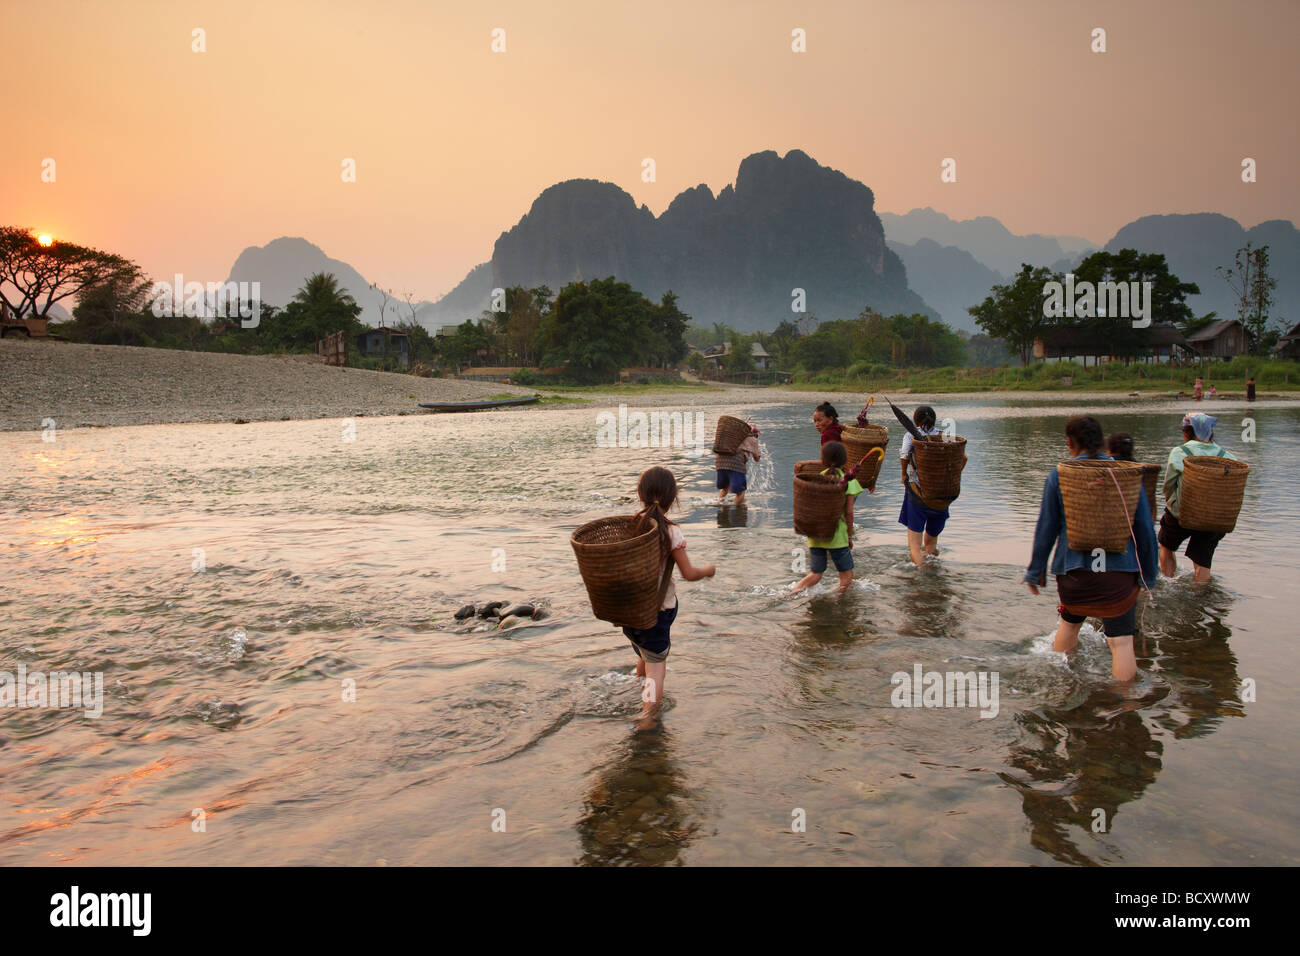 women and girls fording the Nam Song River at Vang Vieng, Laos - Stock Image